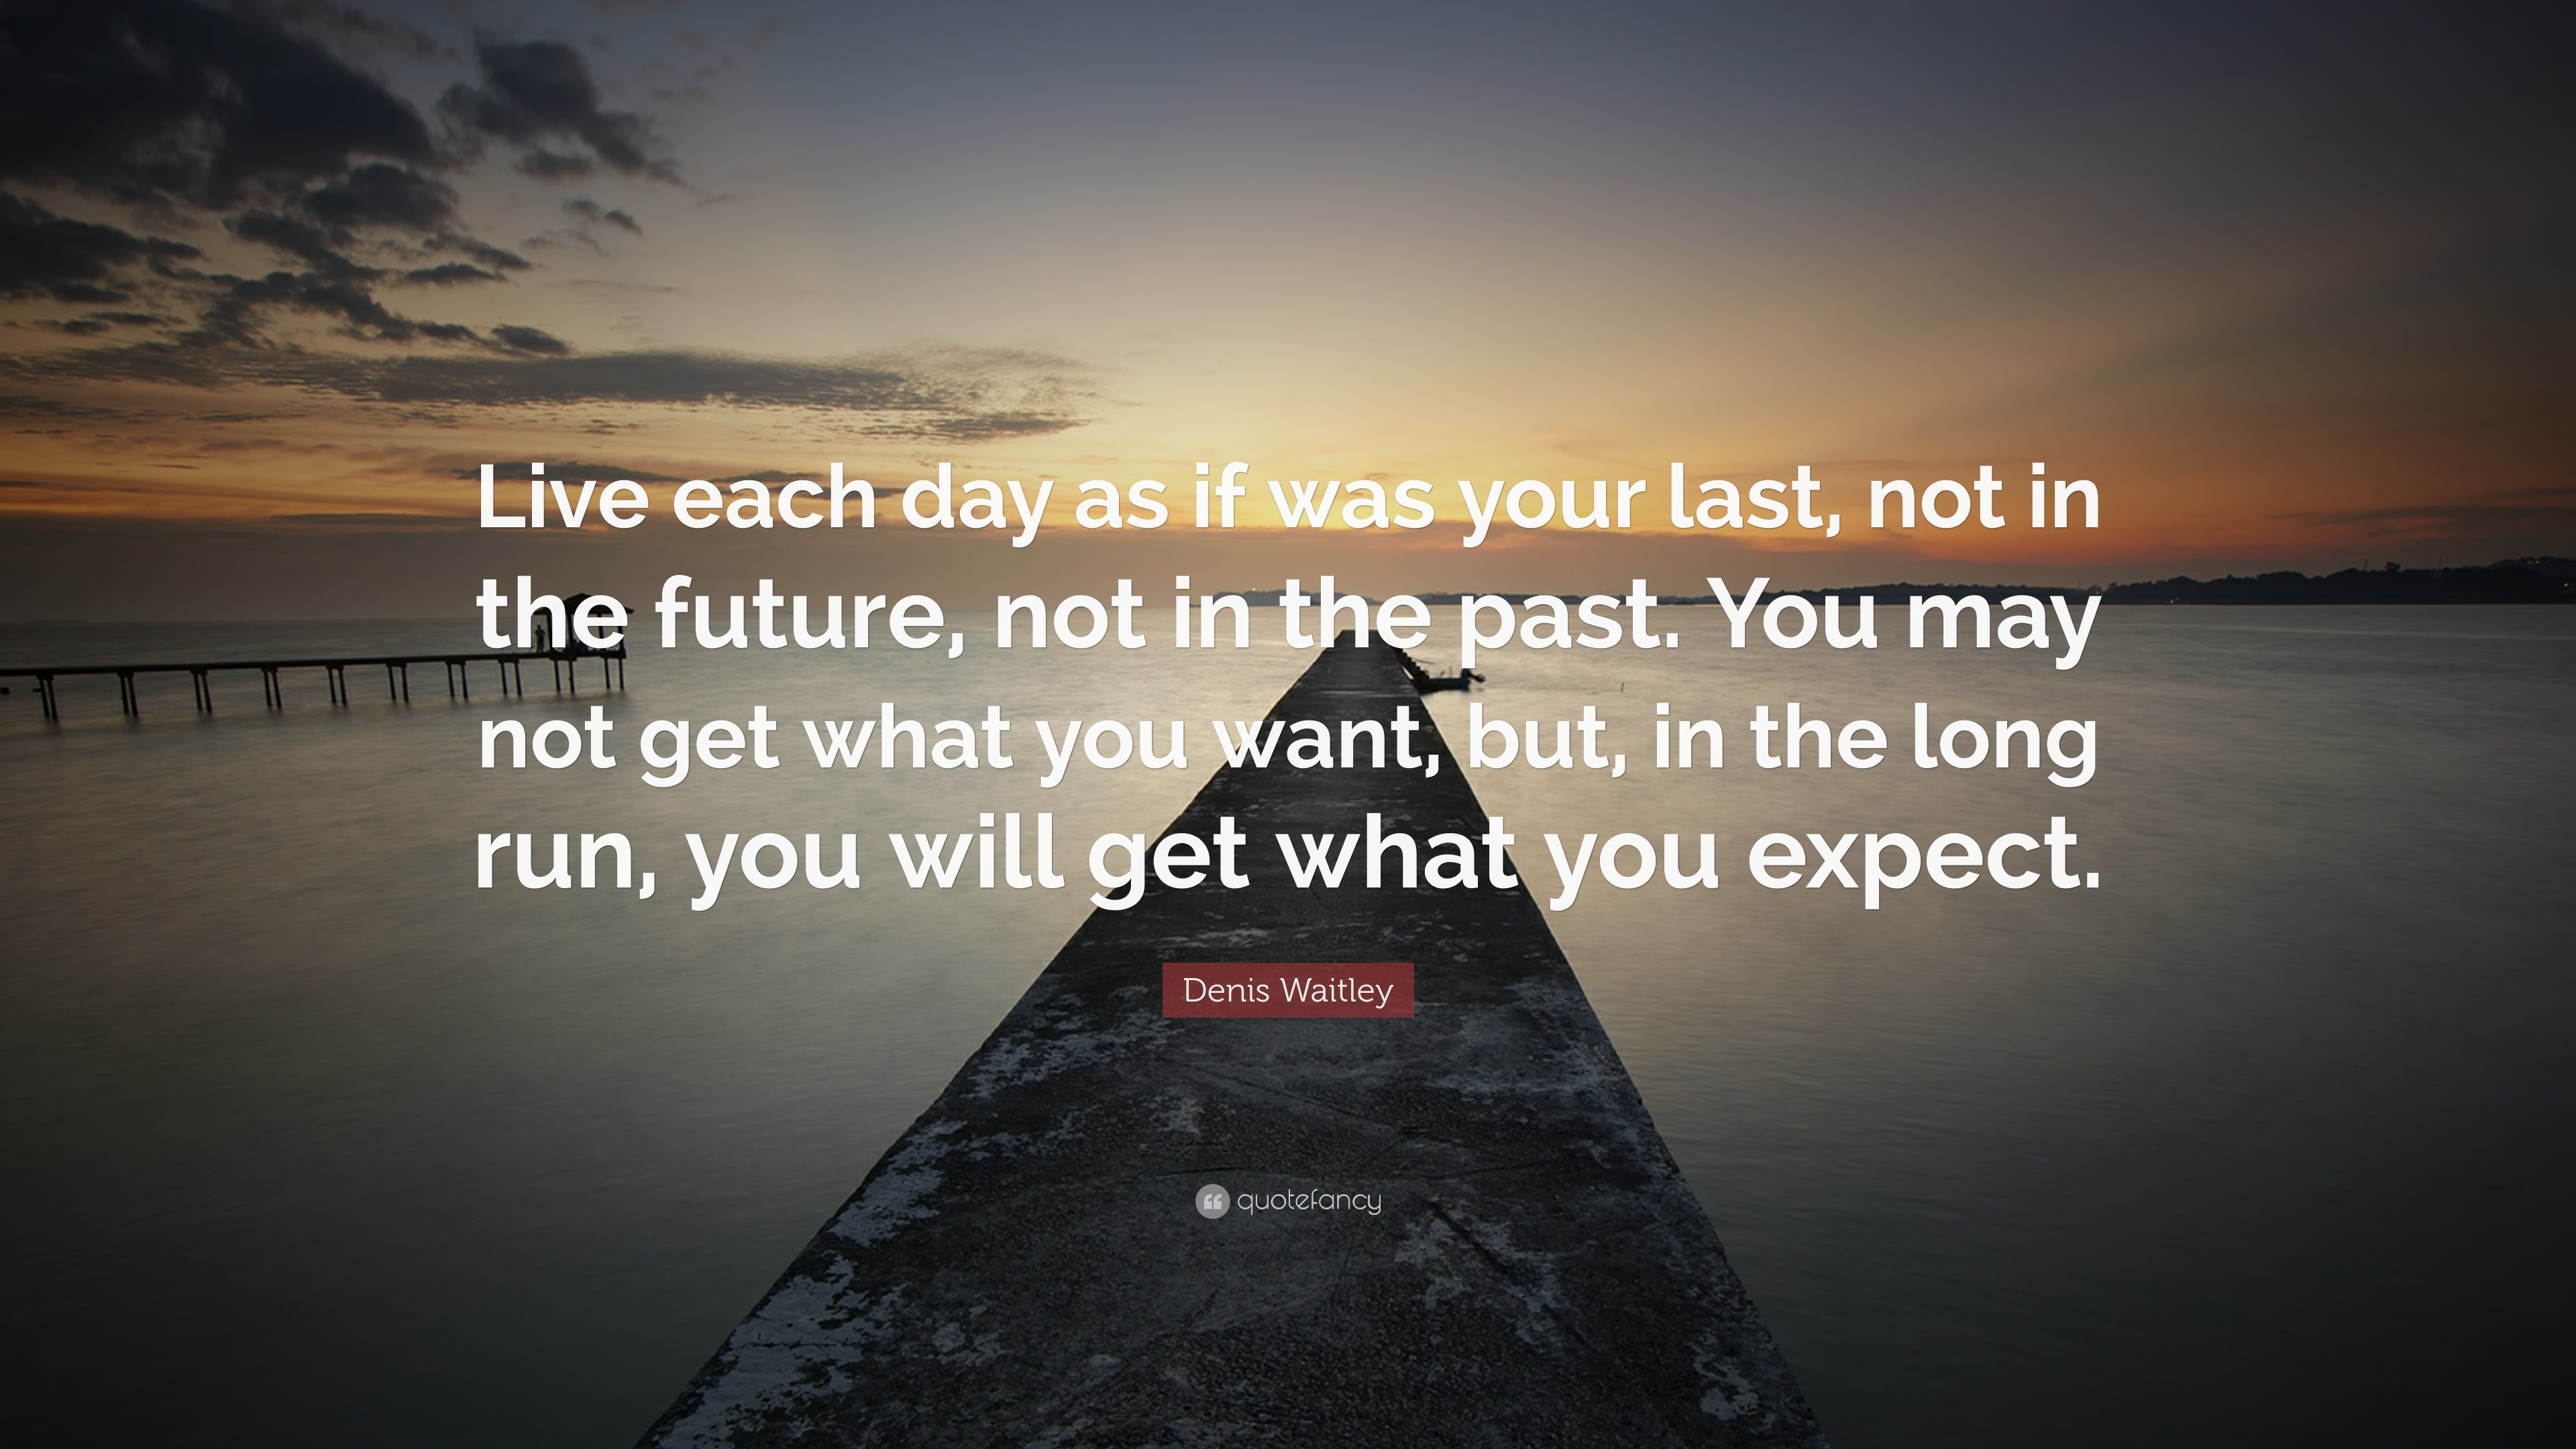 Denis Waitley Quote Live Each Day As If Was Your Last Not In The